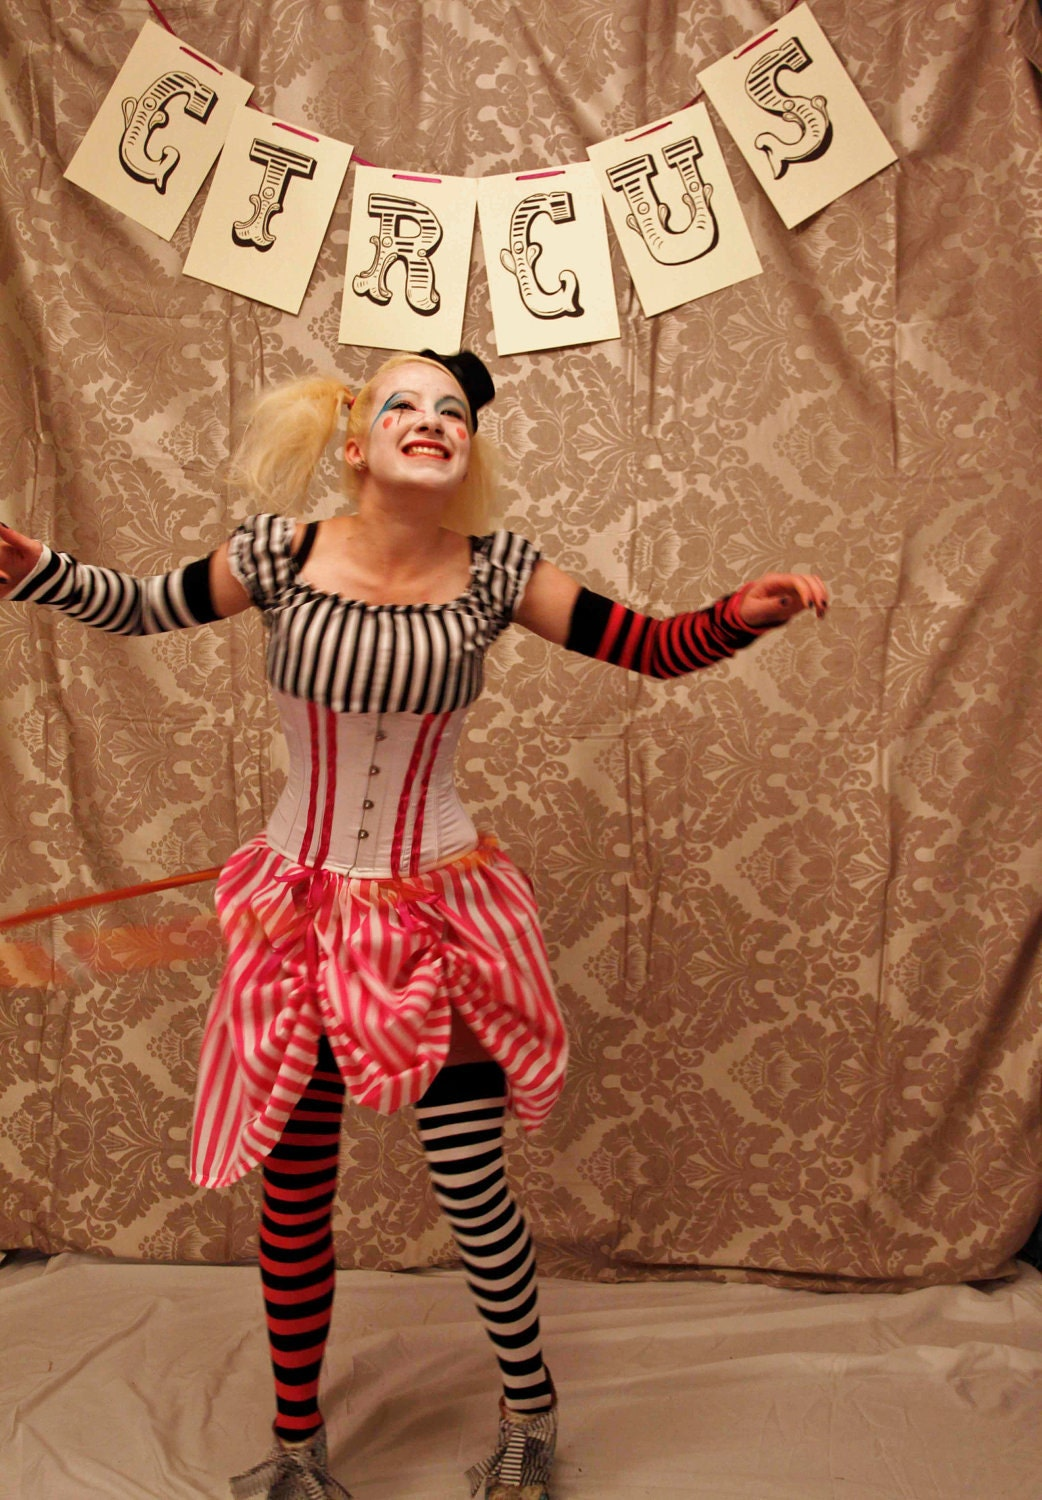 Circus Clown Corset Costume Oufit-CORSET ONLY-Made In Any Size